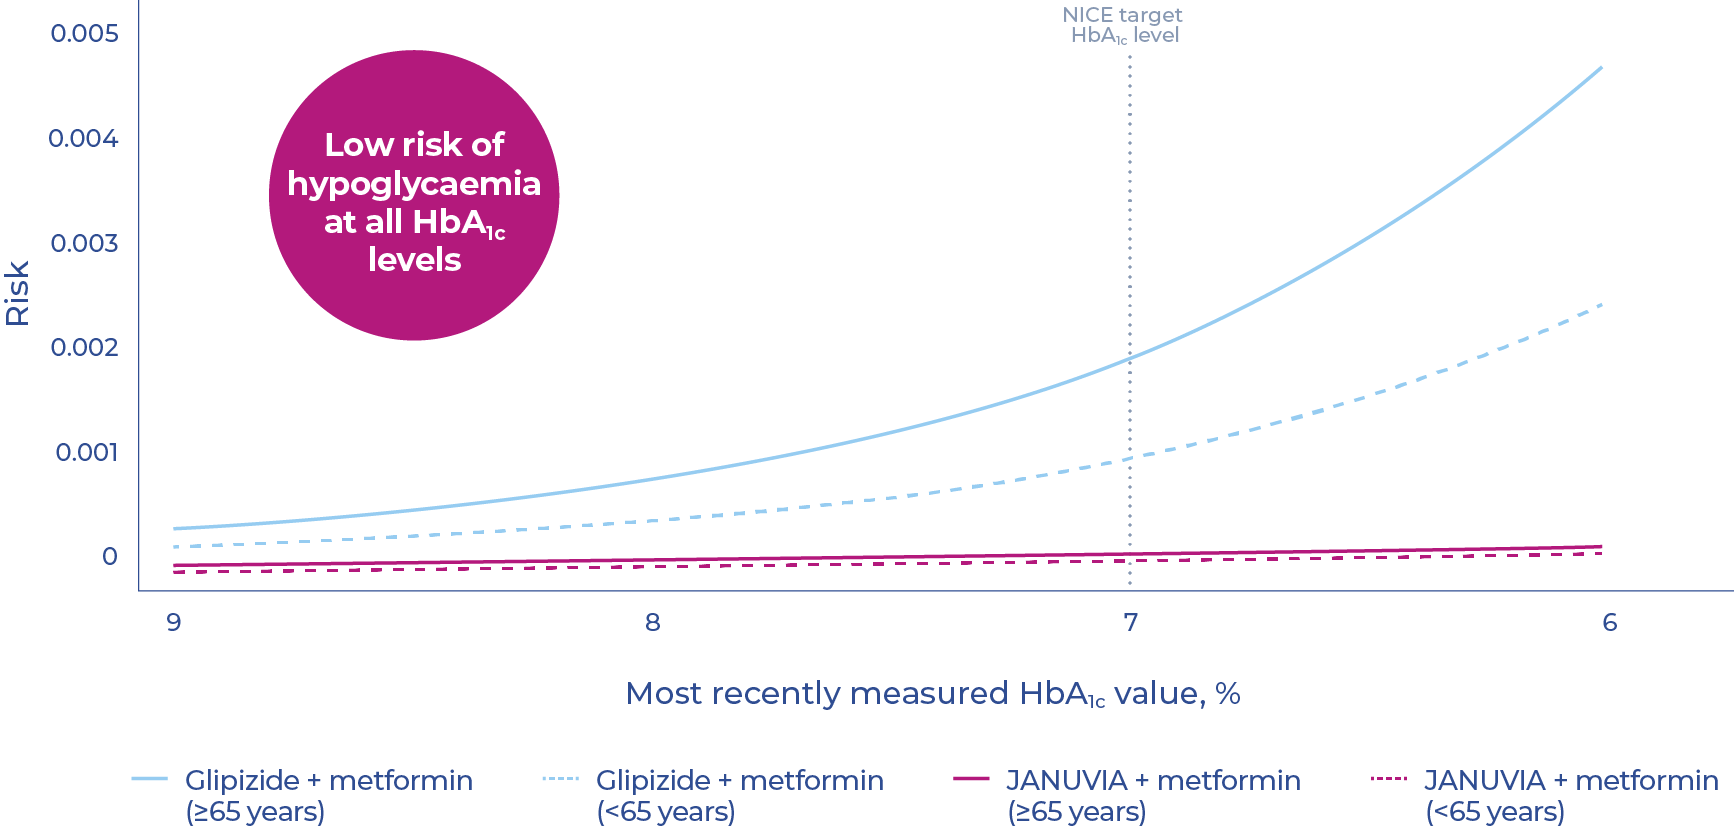 Graph showing risk of hypoglycaemia vs HbA1c level for T2DM populations aged over or under 65 years old, using either glipizide plus metformin or JANUVIA plus metformin